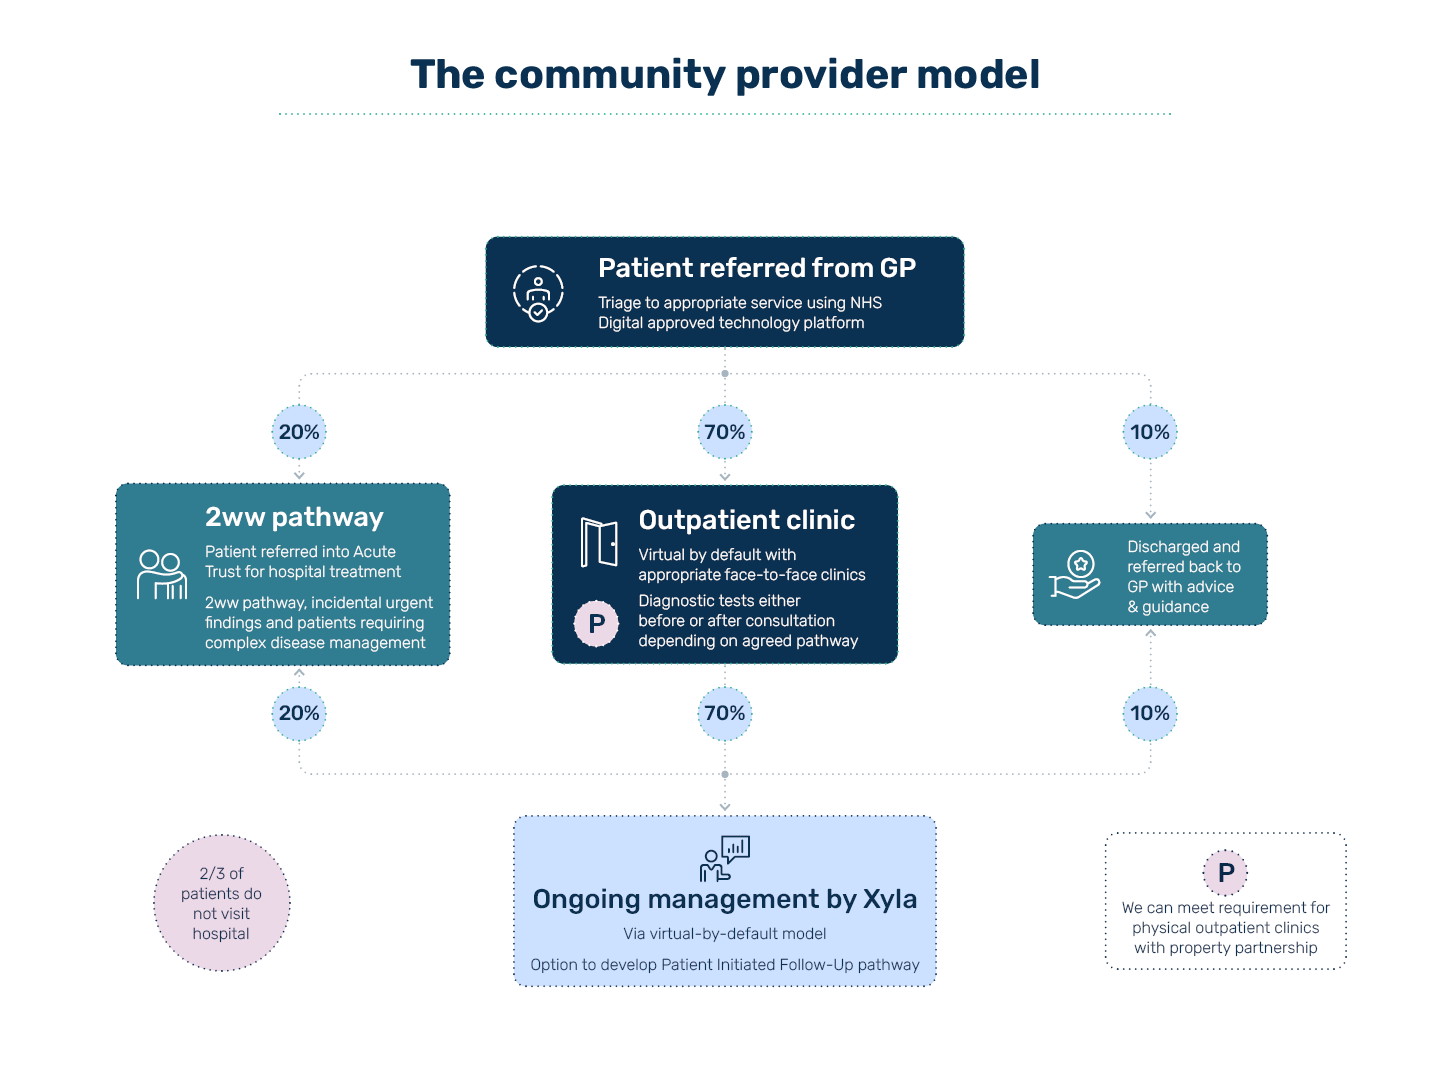 The community provider model for Xyla Elective Care